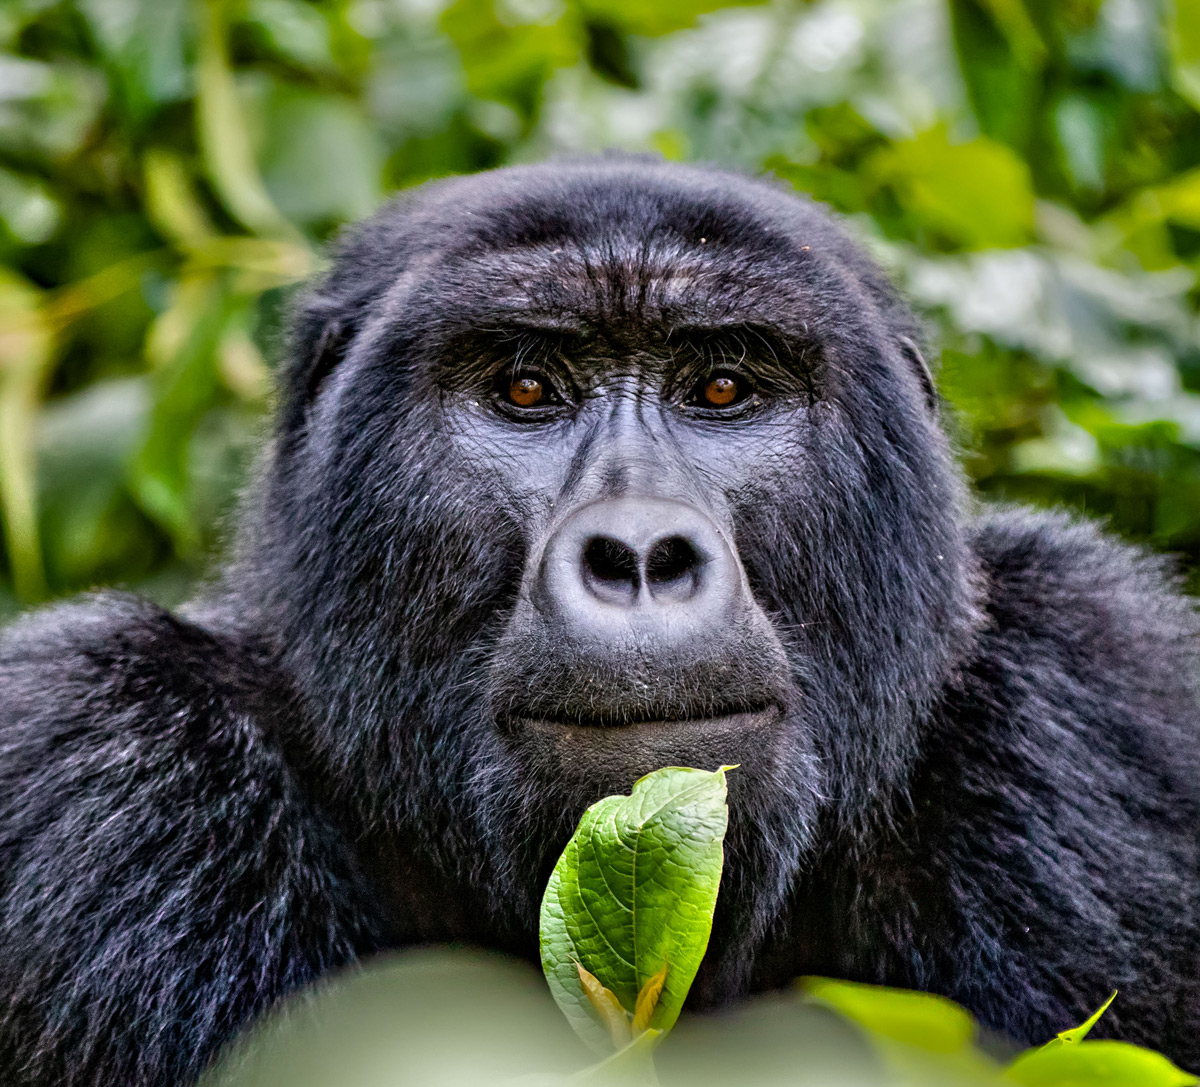 Portrait of a mountain gorilla in Bwindi Impenetrable National Park, Uganda © Ernest Porter